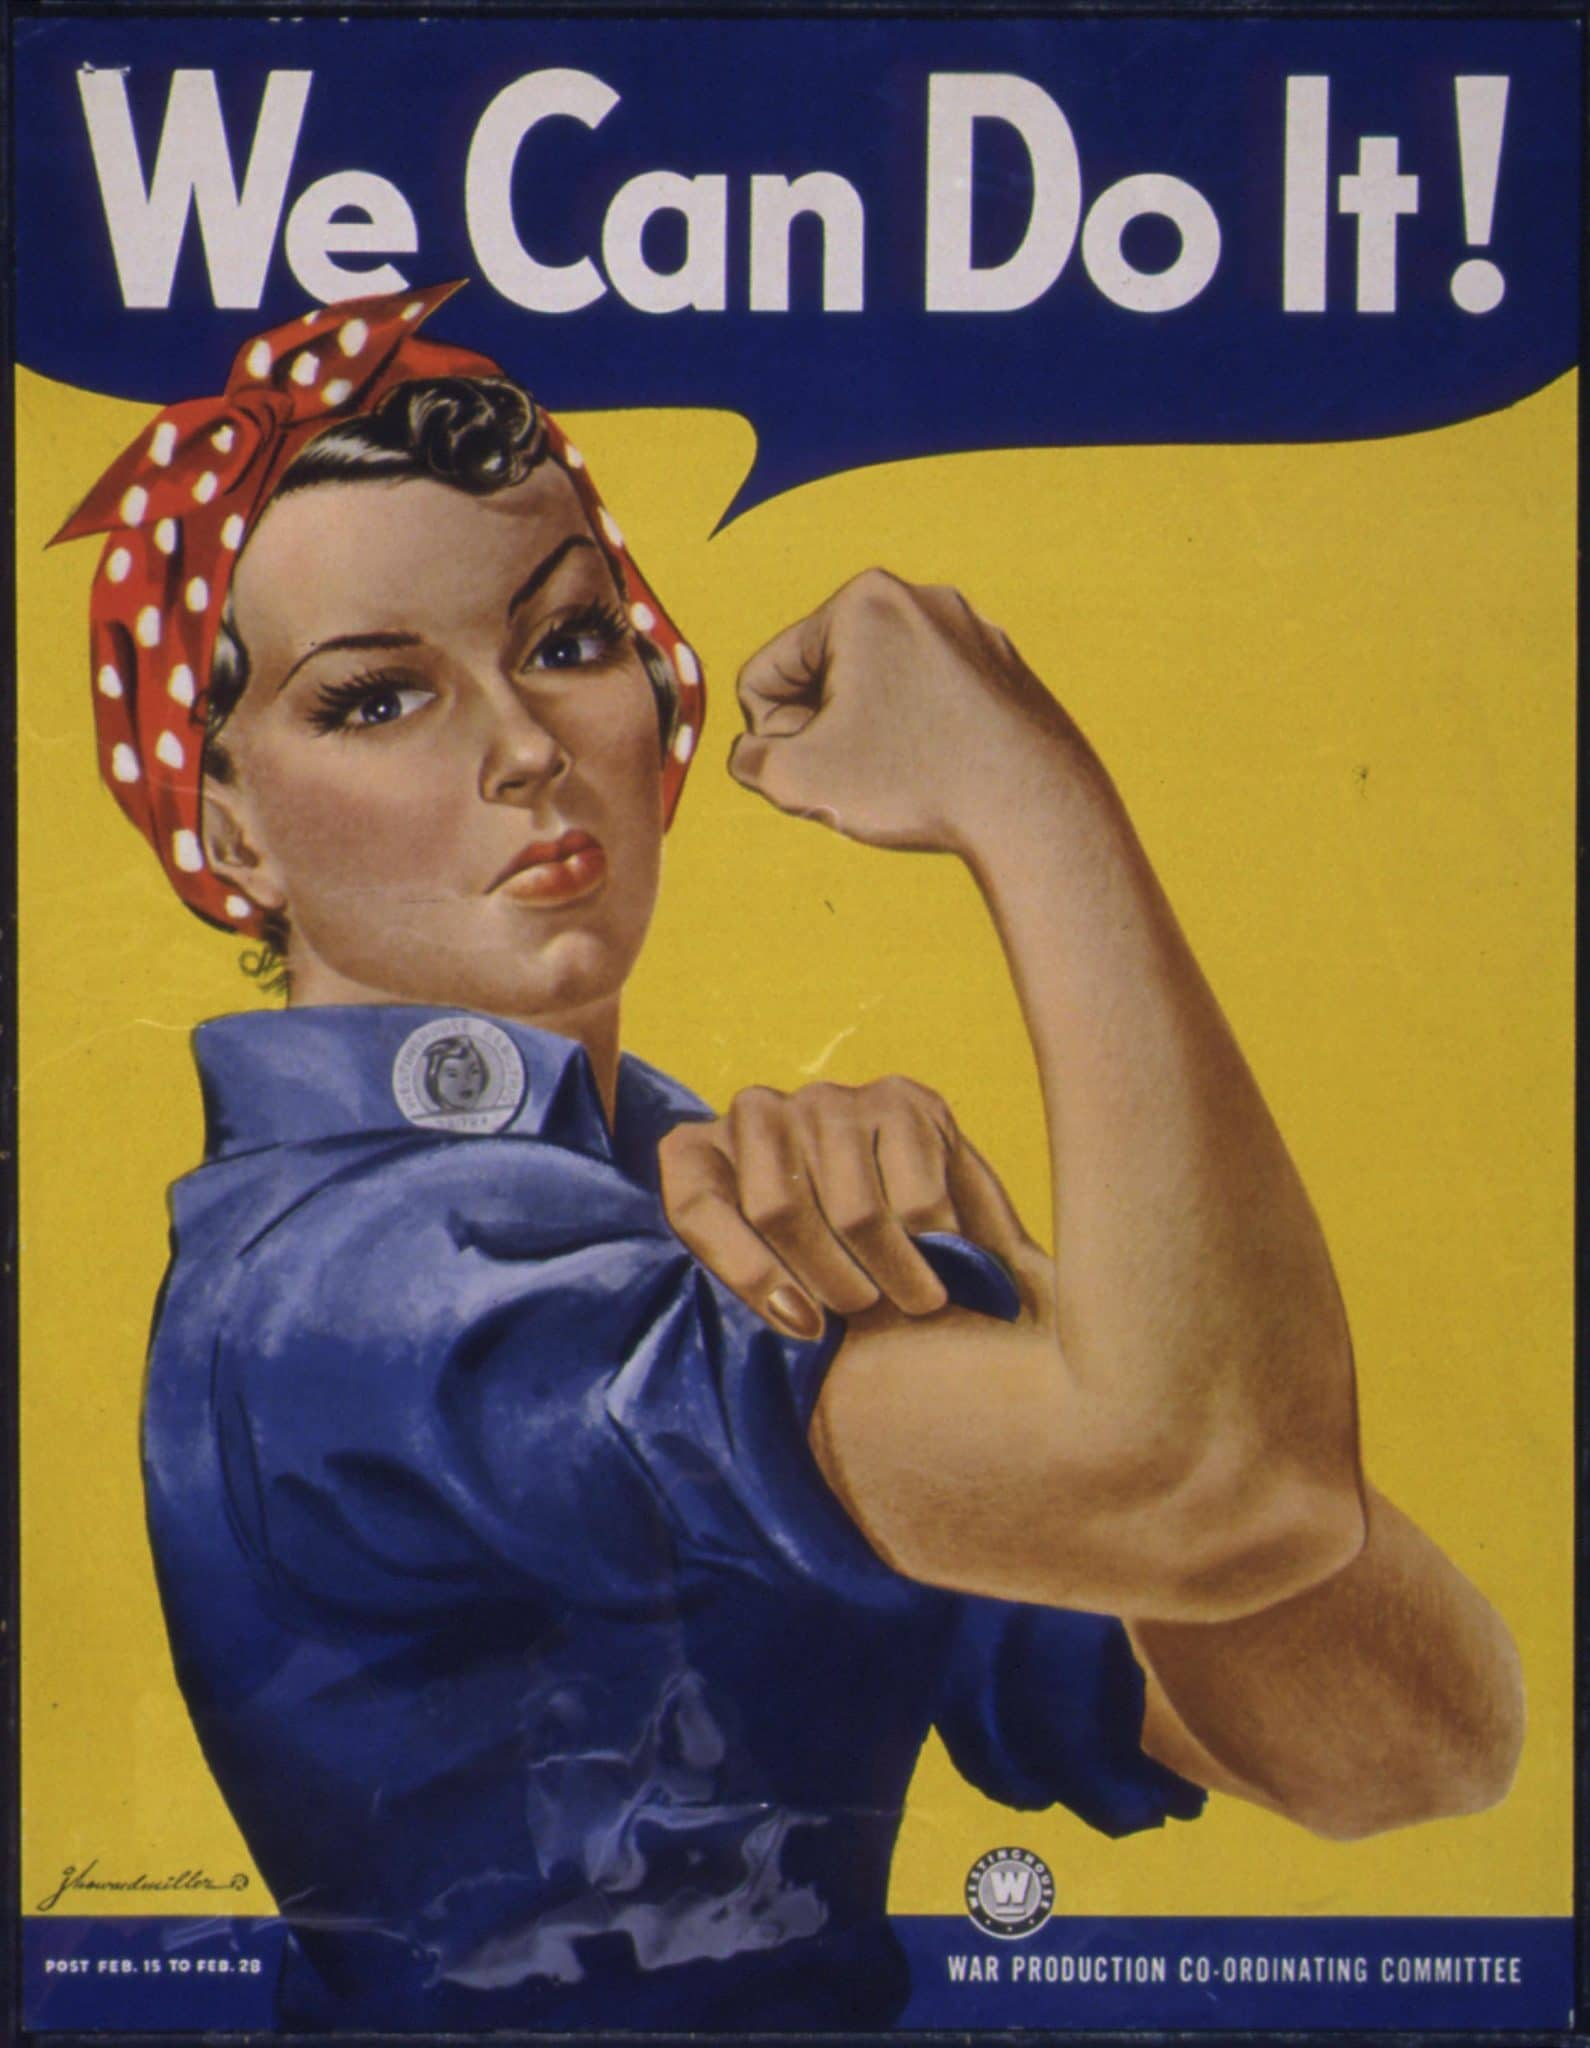 Rosie The Riveter Honoring the Women of WWII